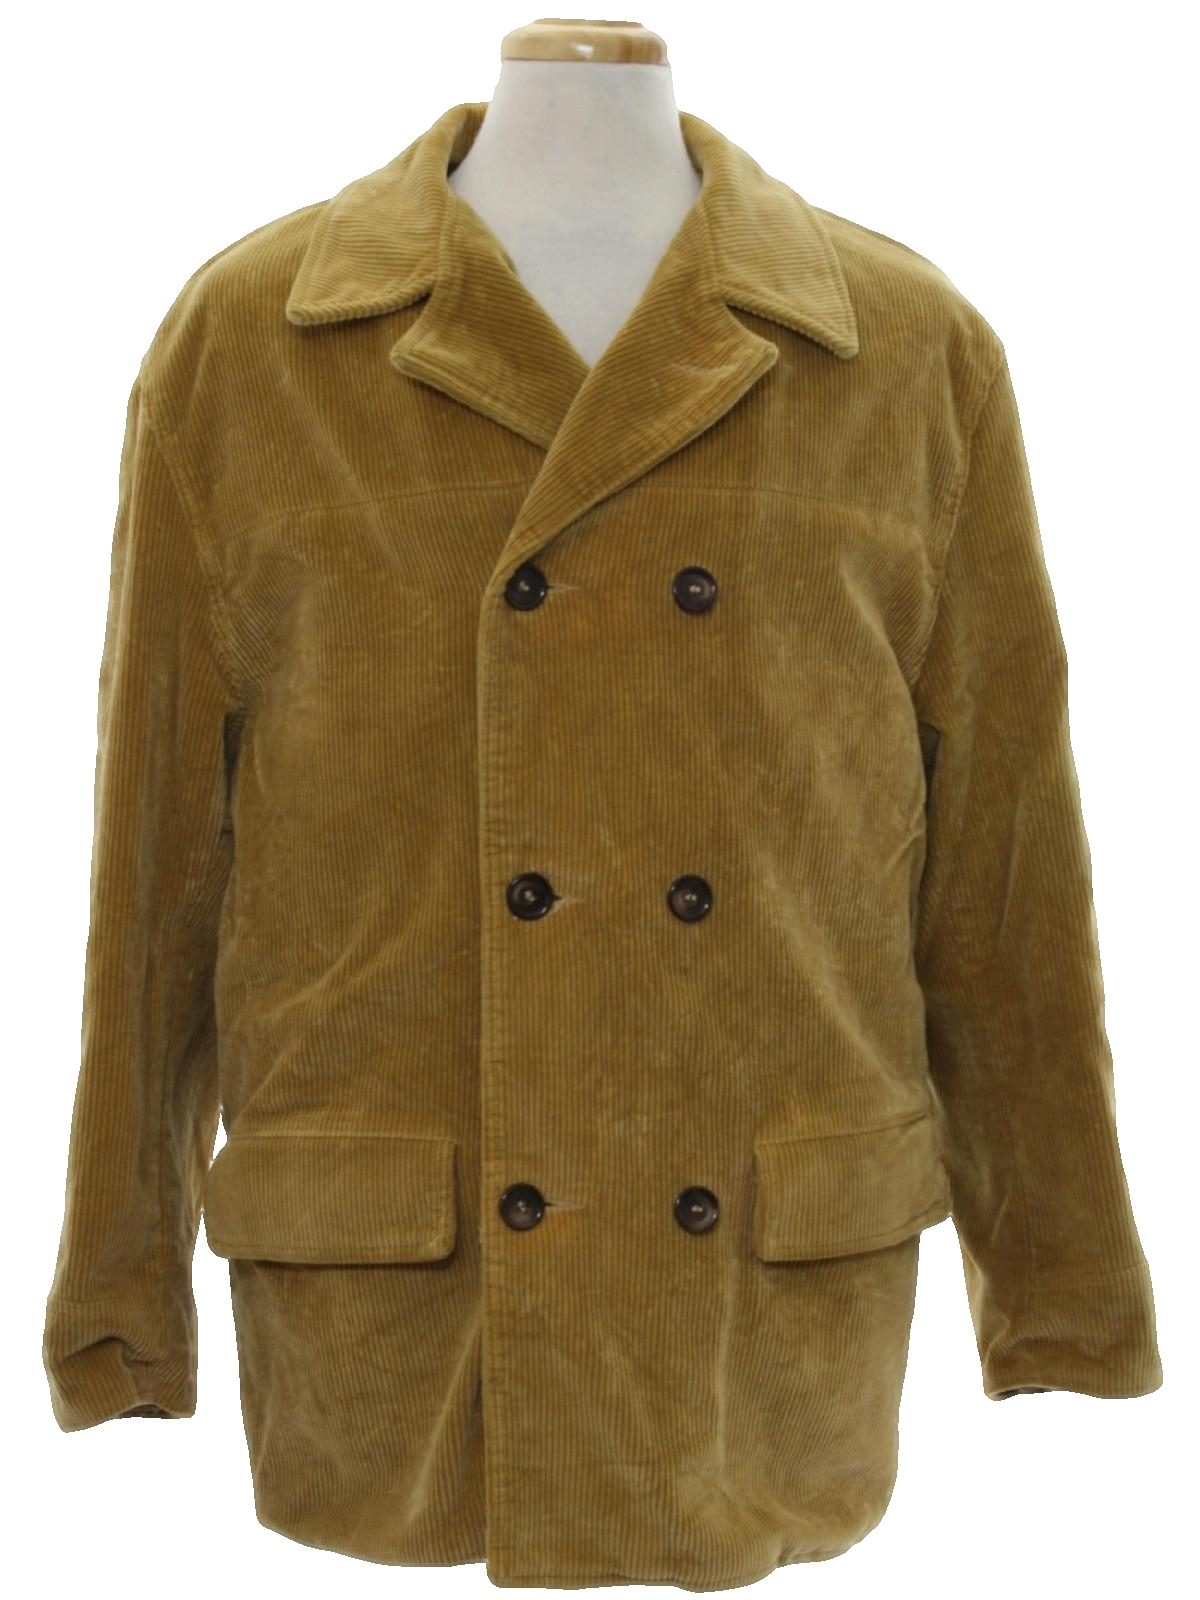 Retro 70's Jacket: 70s -Sam Walker- Mens camel colored wide wale ...